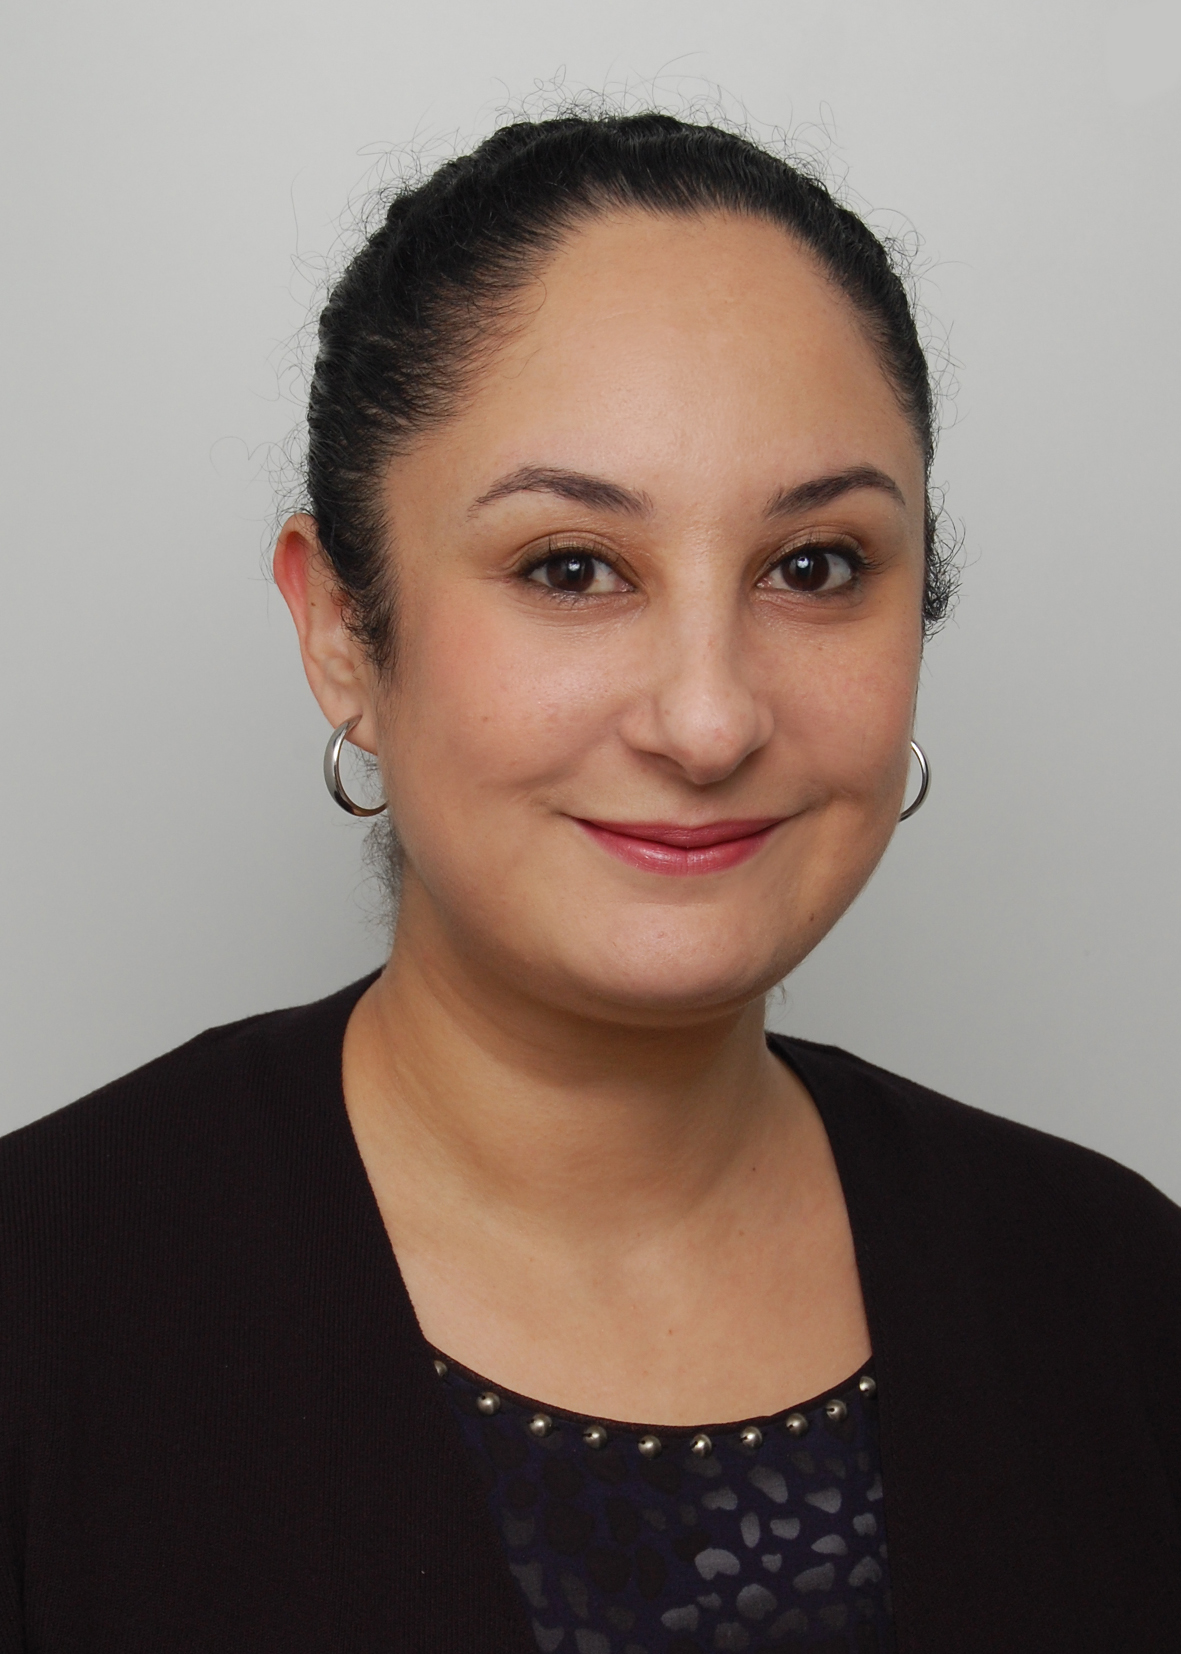 meryem faris - is a tri-lingual microfinance and gender analyst committed to solutions that ensure gender equity, social performance and impact. [Moroccan national]